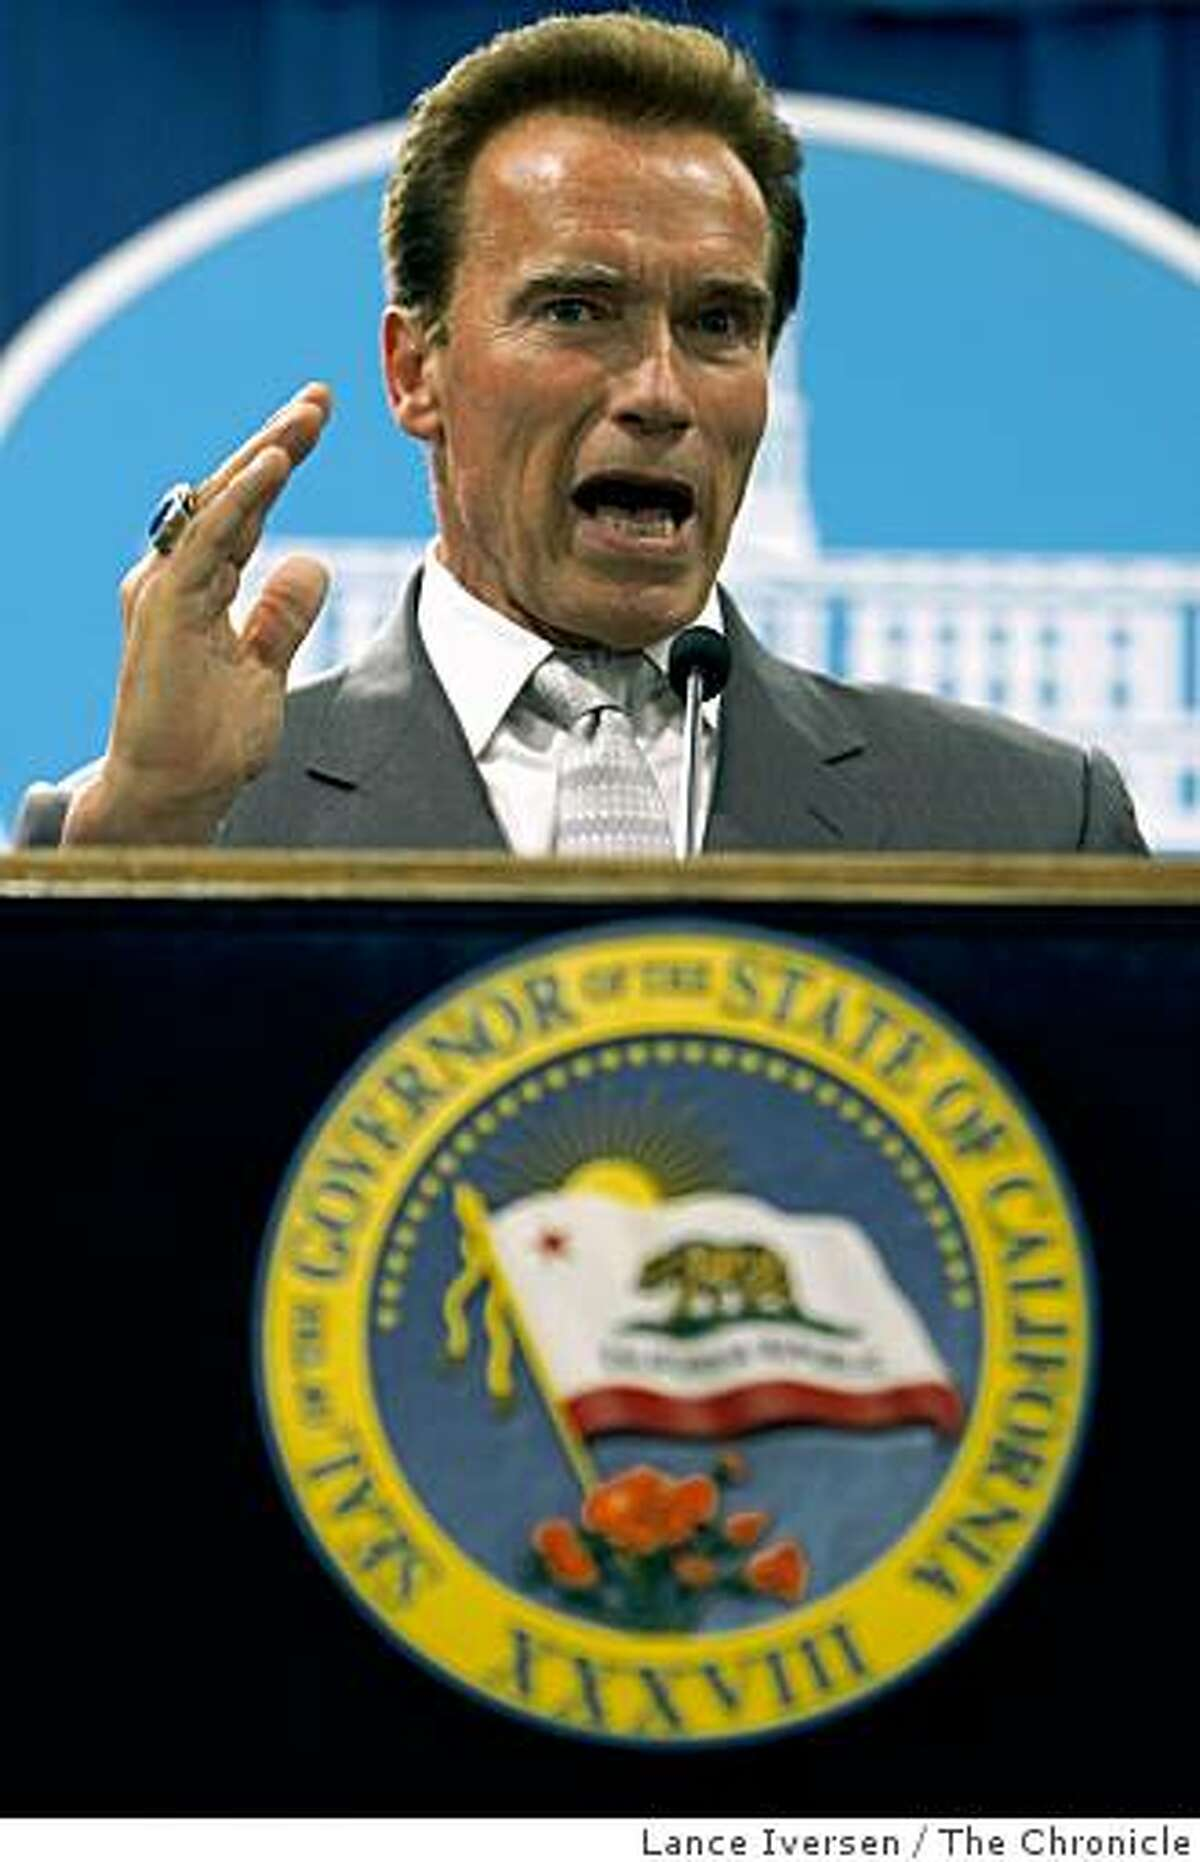 Governor Arnold Schwarzenegger presented his latest revised versions of the California State Budget Thursday May 14, 2009 during a press conference at the State Capital in Sacramento.